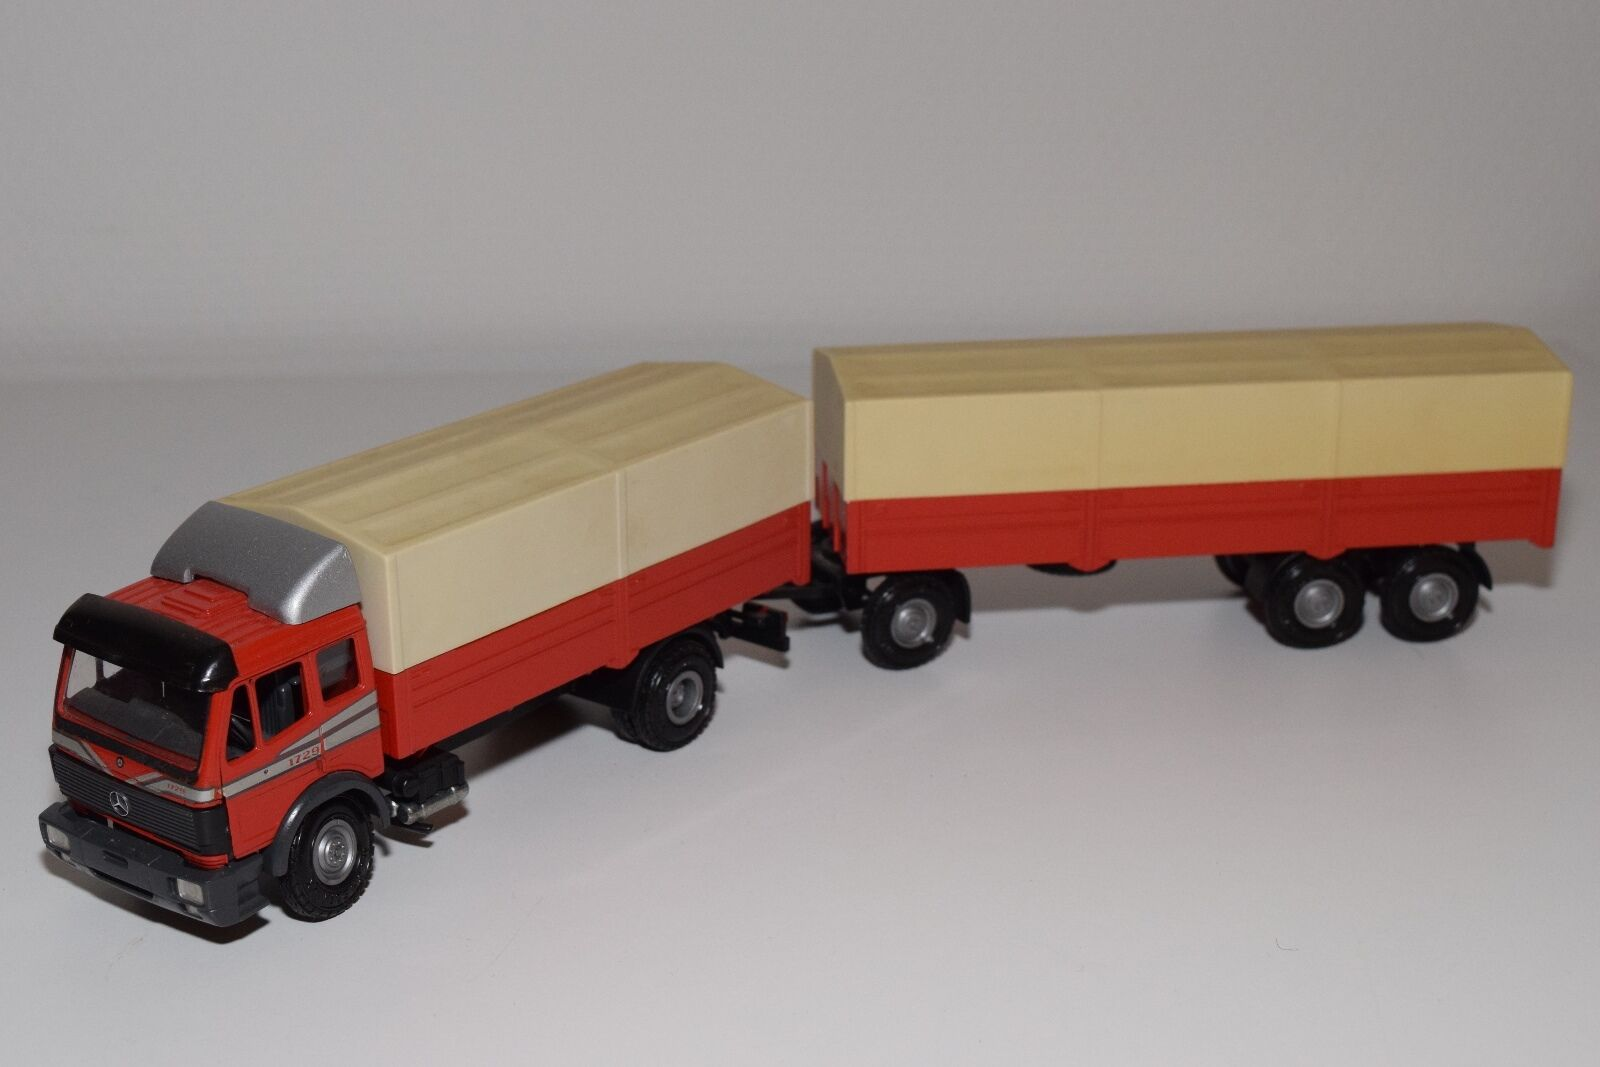 NZG MERCEDES BENZ BENZ BENZ TRUCK WITH TRAILER WERBE PROMO Rojo NEAR MINT CONDITION 67266b